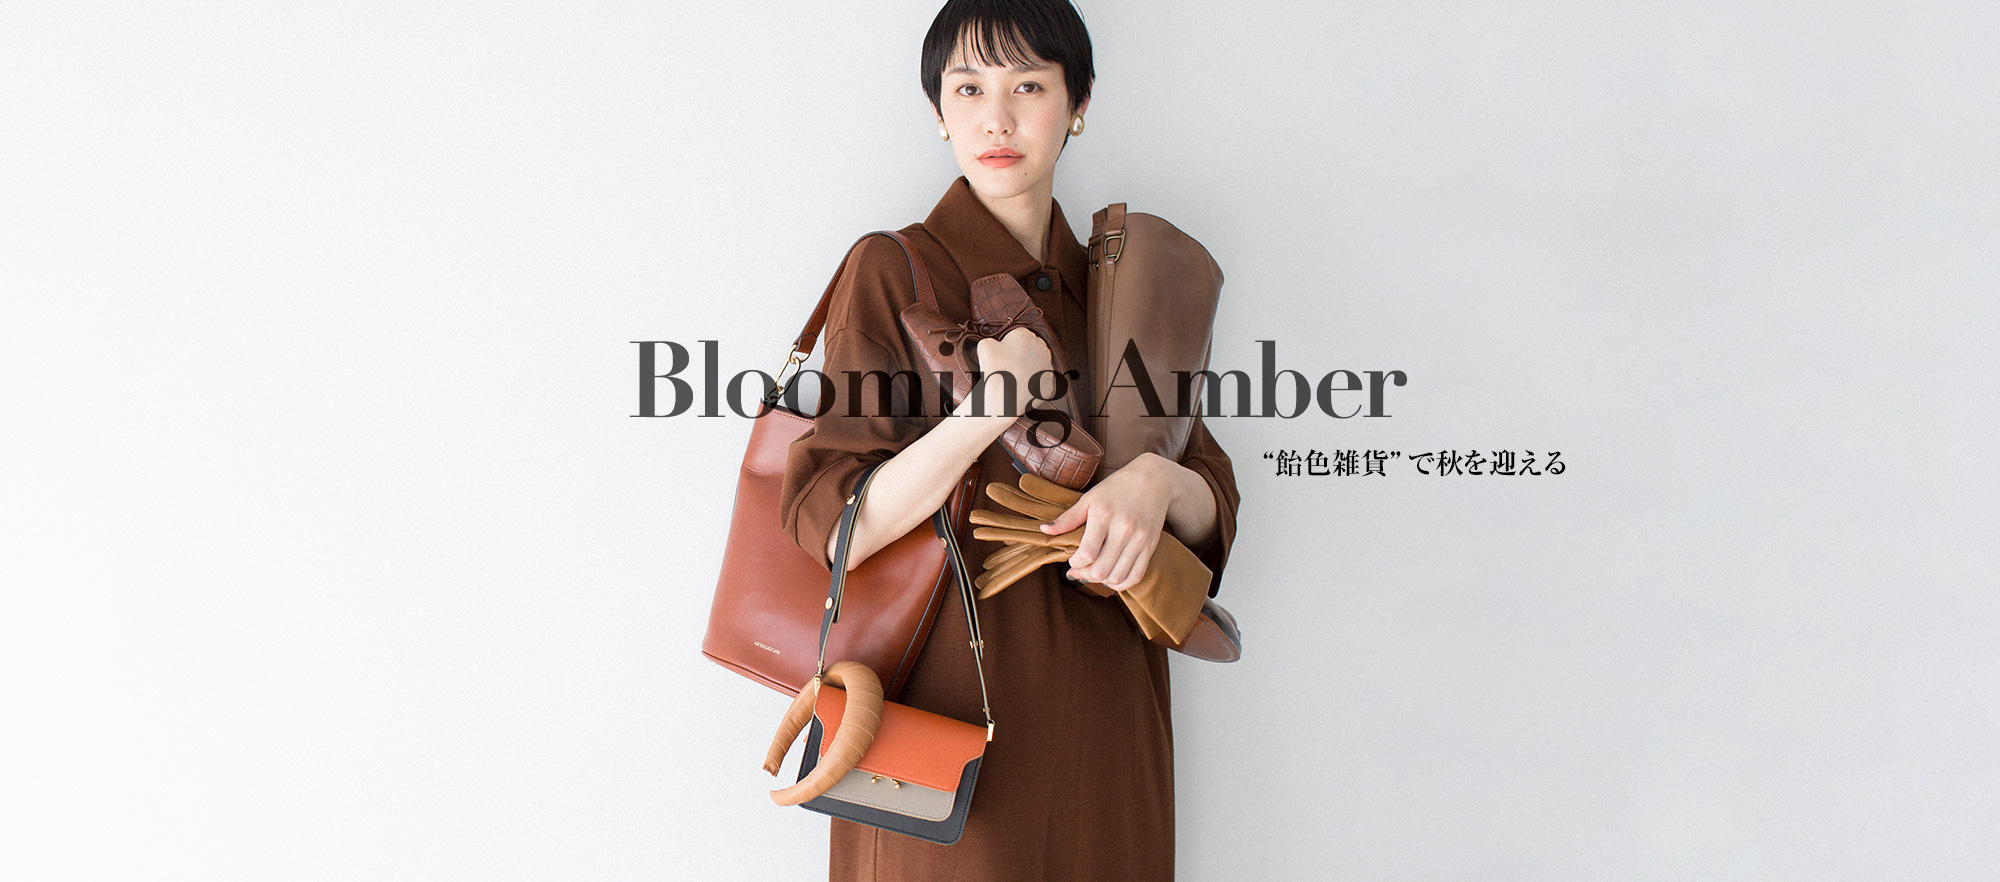 Blooming Amber